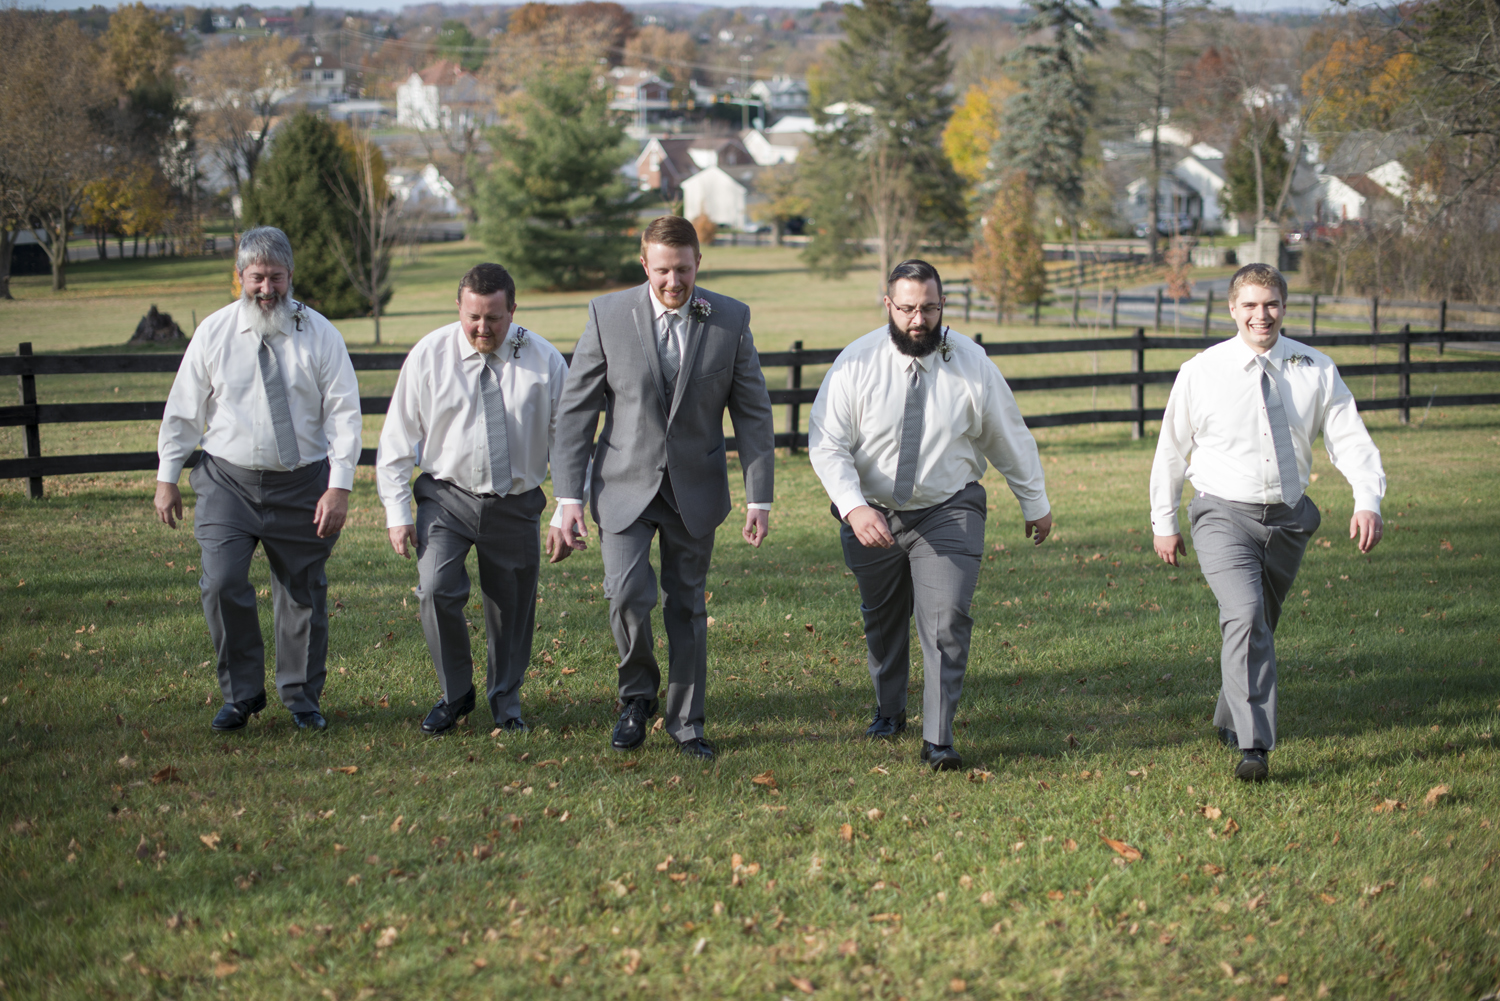 Epic picture of groomsmen in gray suits walking